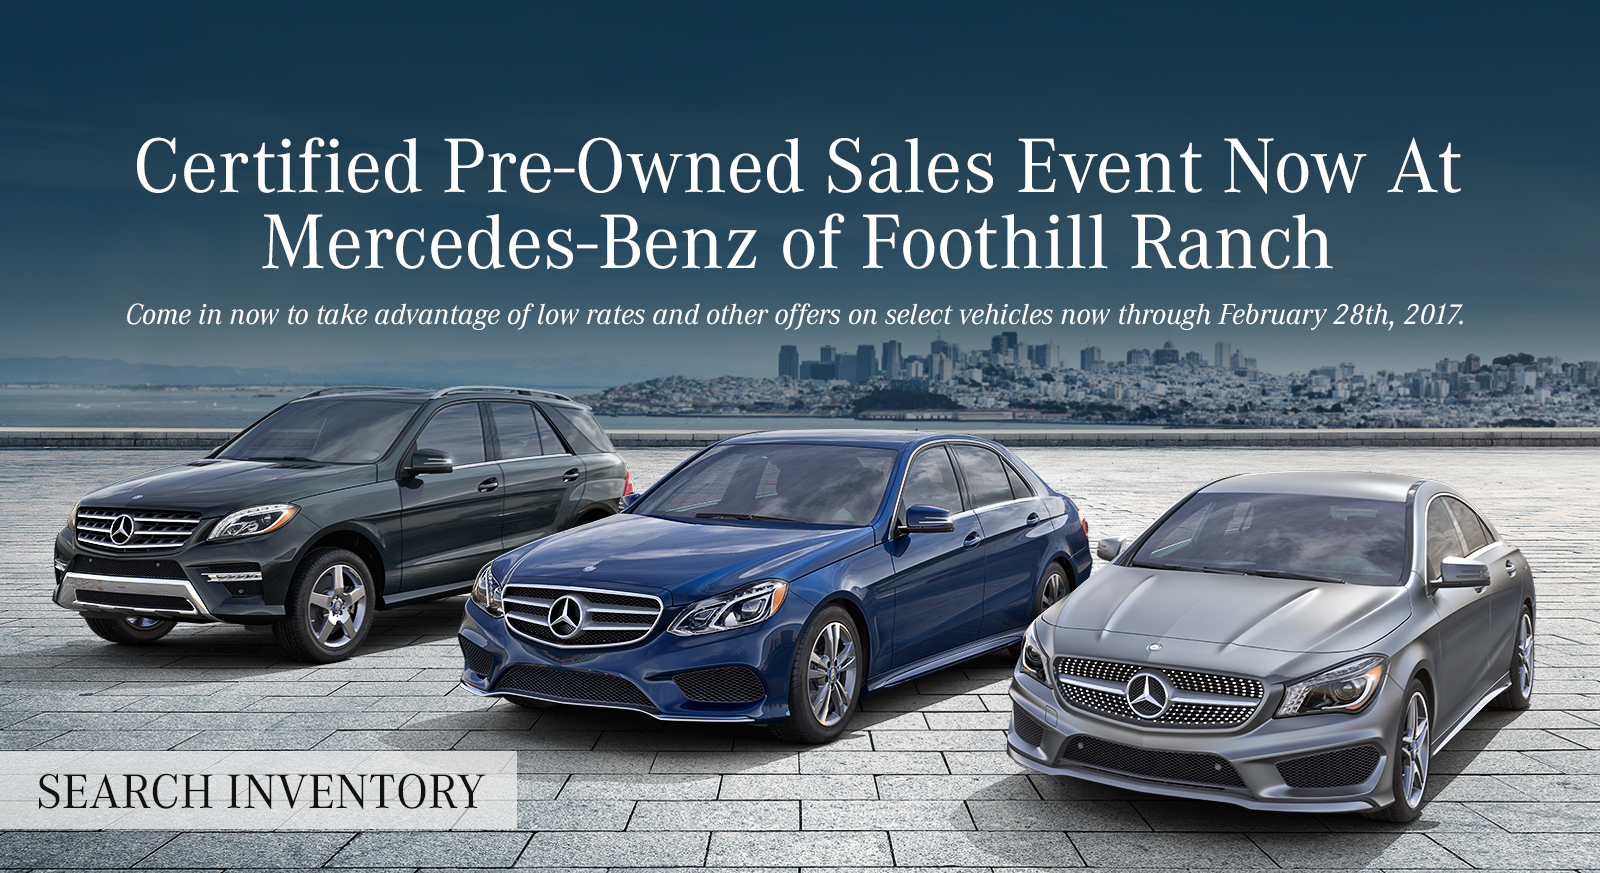 Mercedes benz of foothill ranch new used cars for Mercedes benz certified pre owned sales event